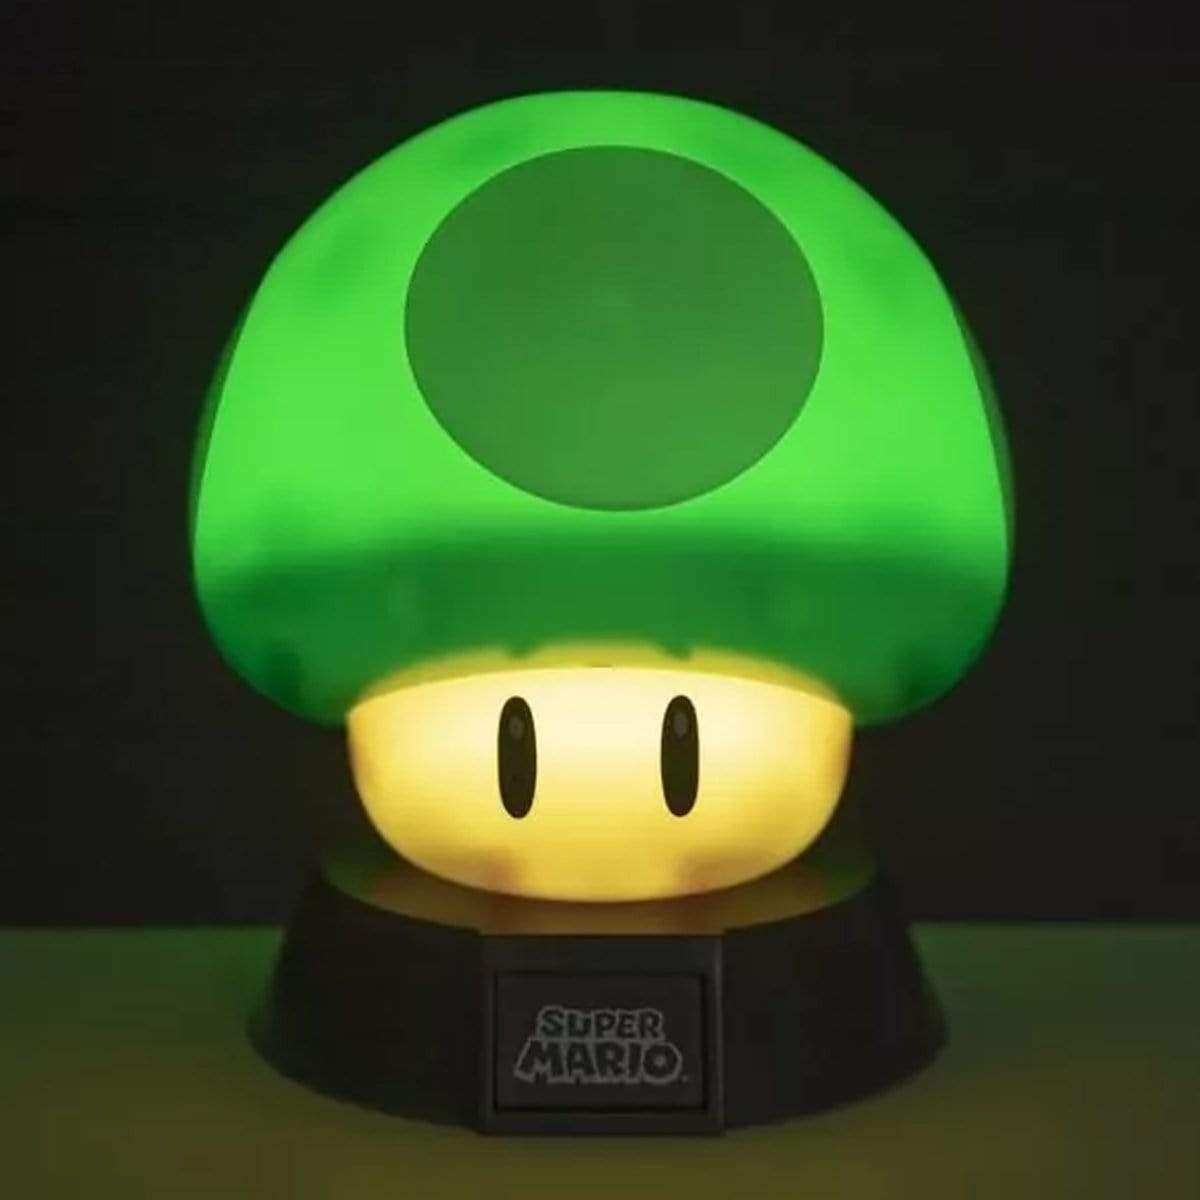 1up Mushroom Super Mario Bros Lamp Light By Nintendo